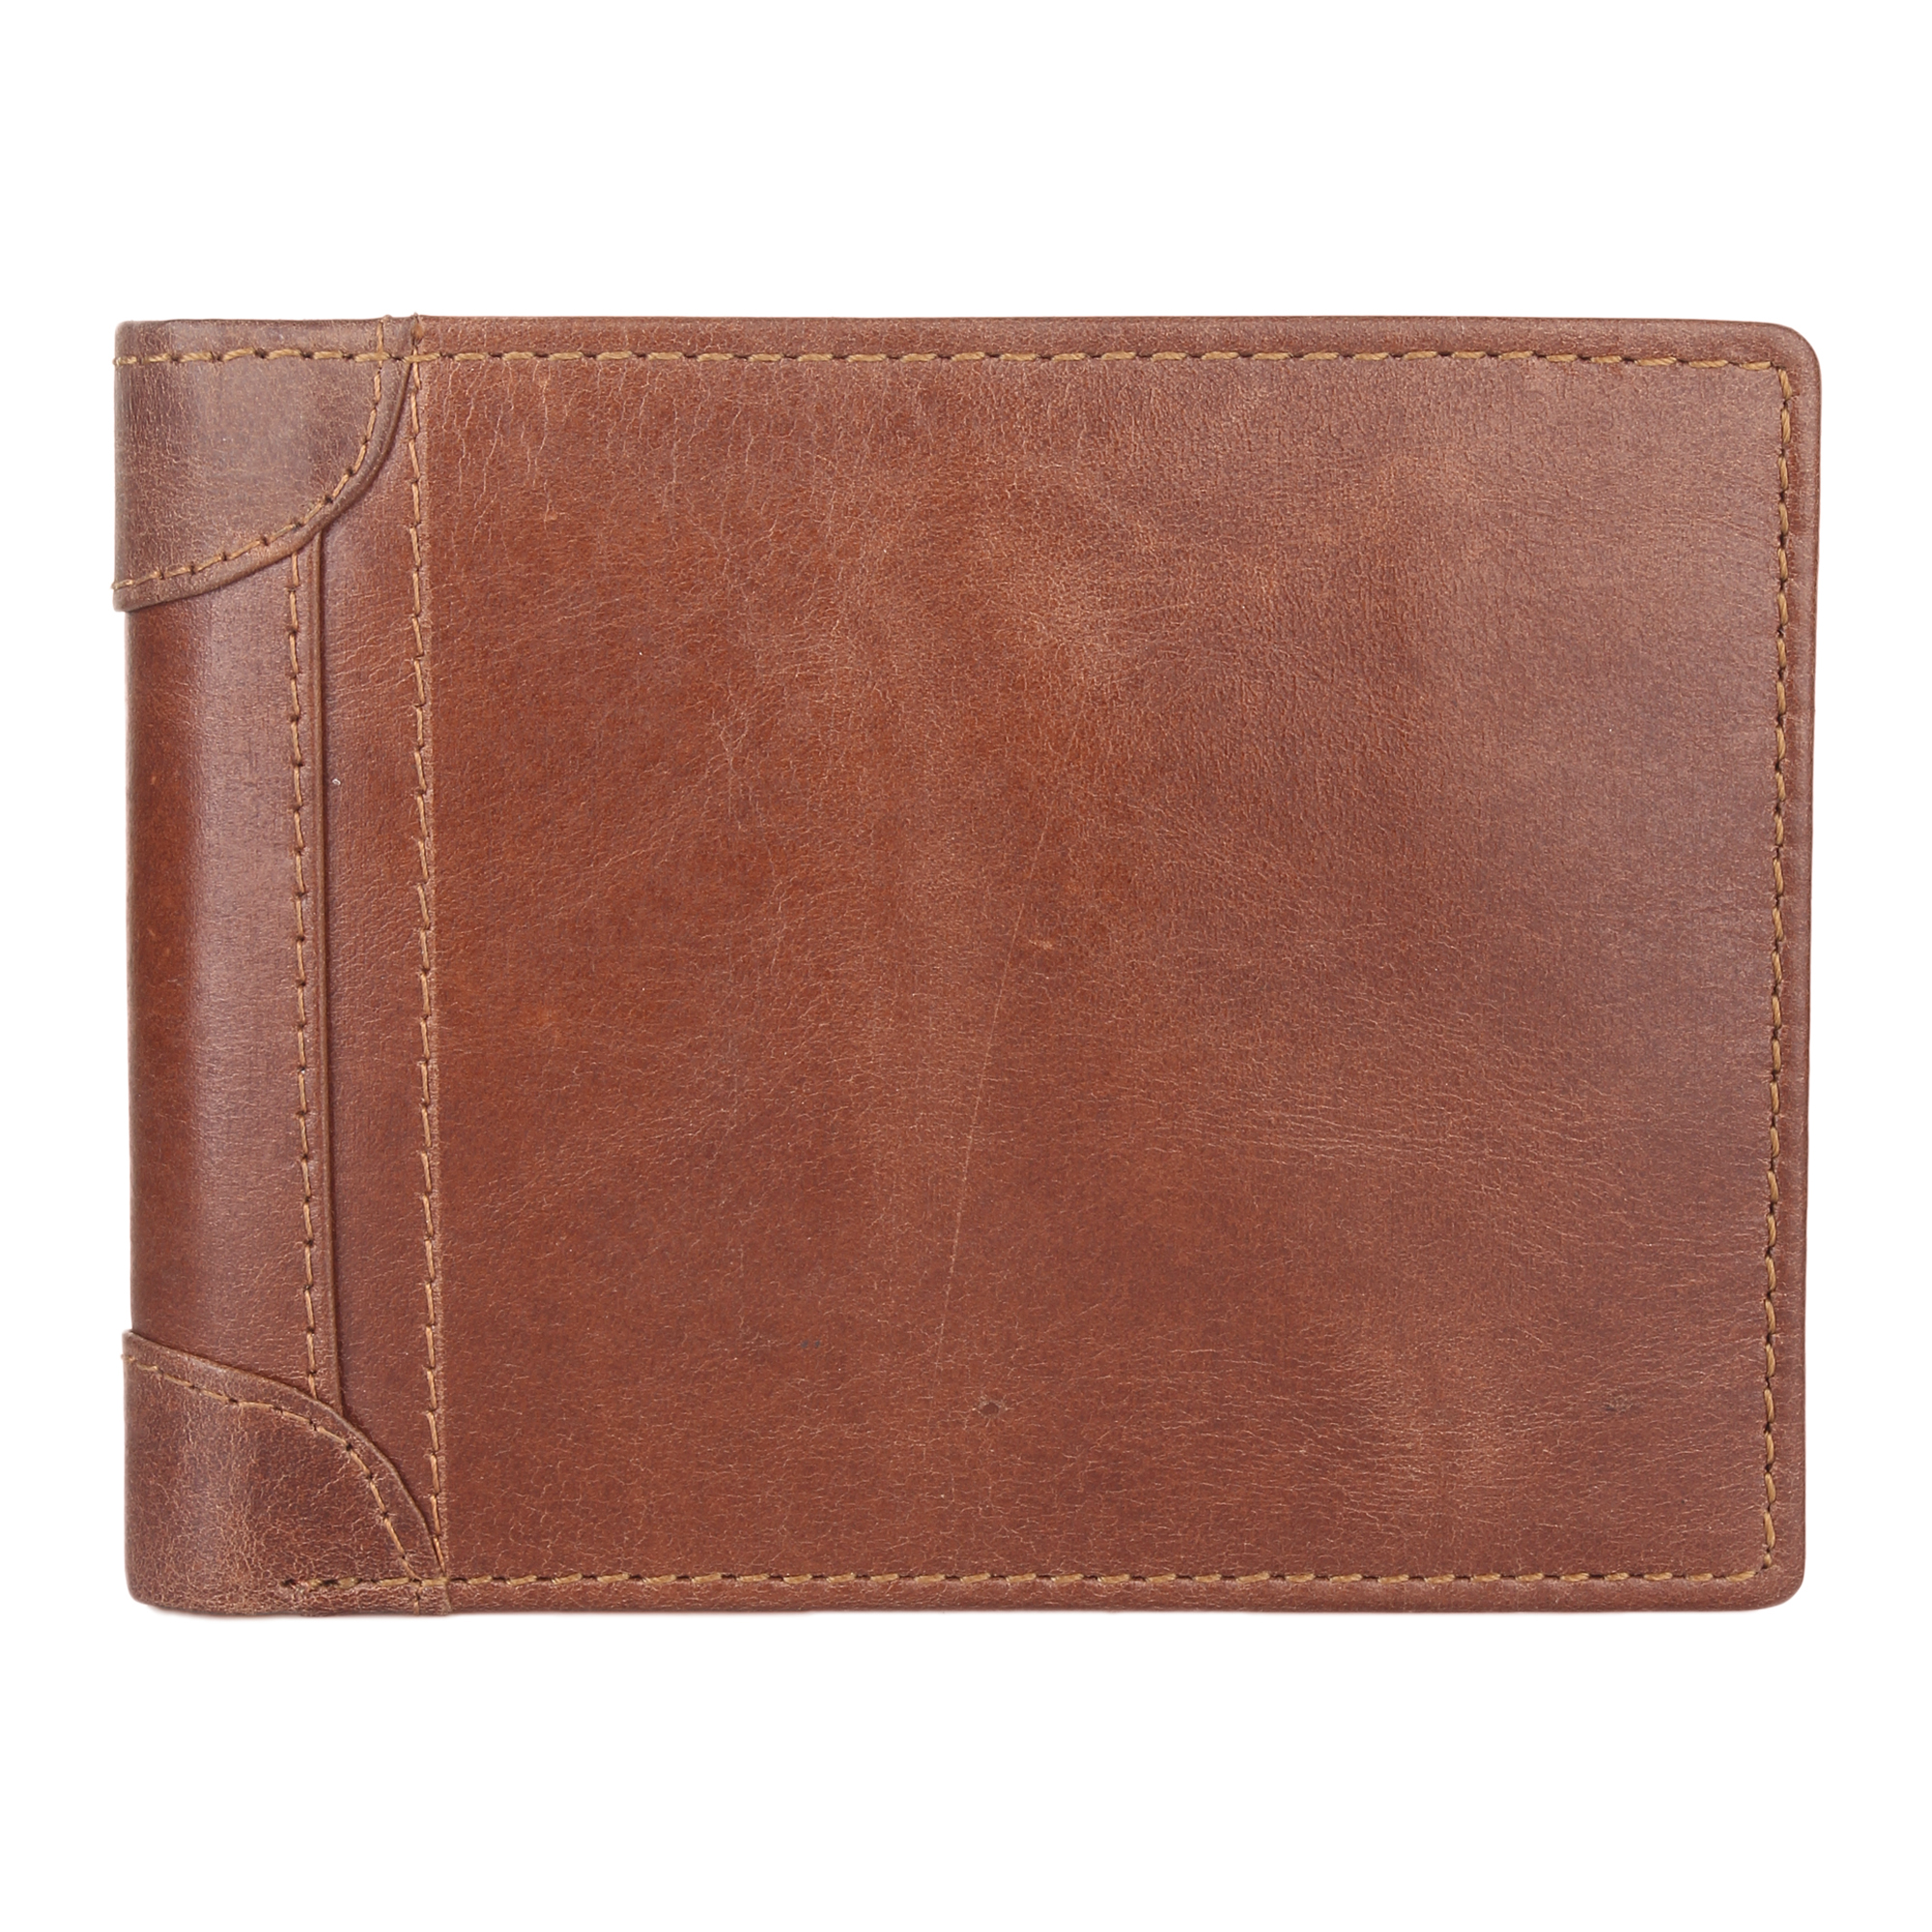 Leather Wallets Manufacturers in Australia, Leather Wallets Suppliers in Australia, Leather Wallets Wholesalers in Australia, Leather Wallets Traders in Australia, custom leather wallet manufacturers in Australia, Leathe